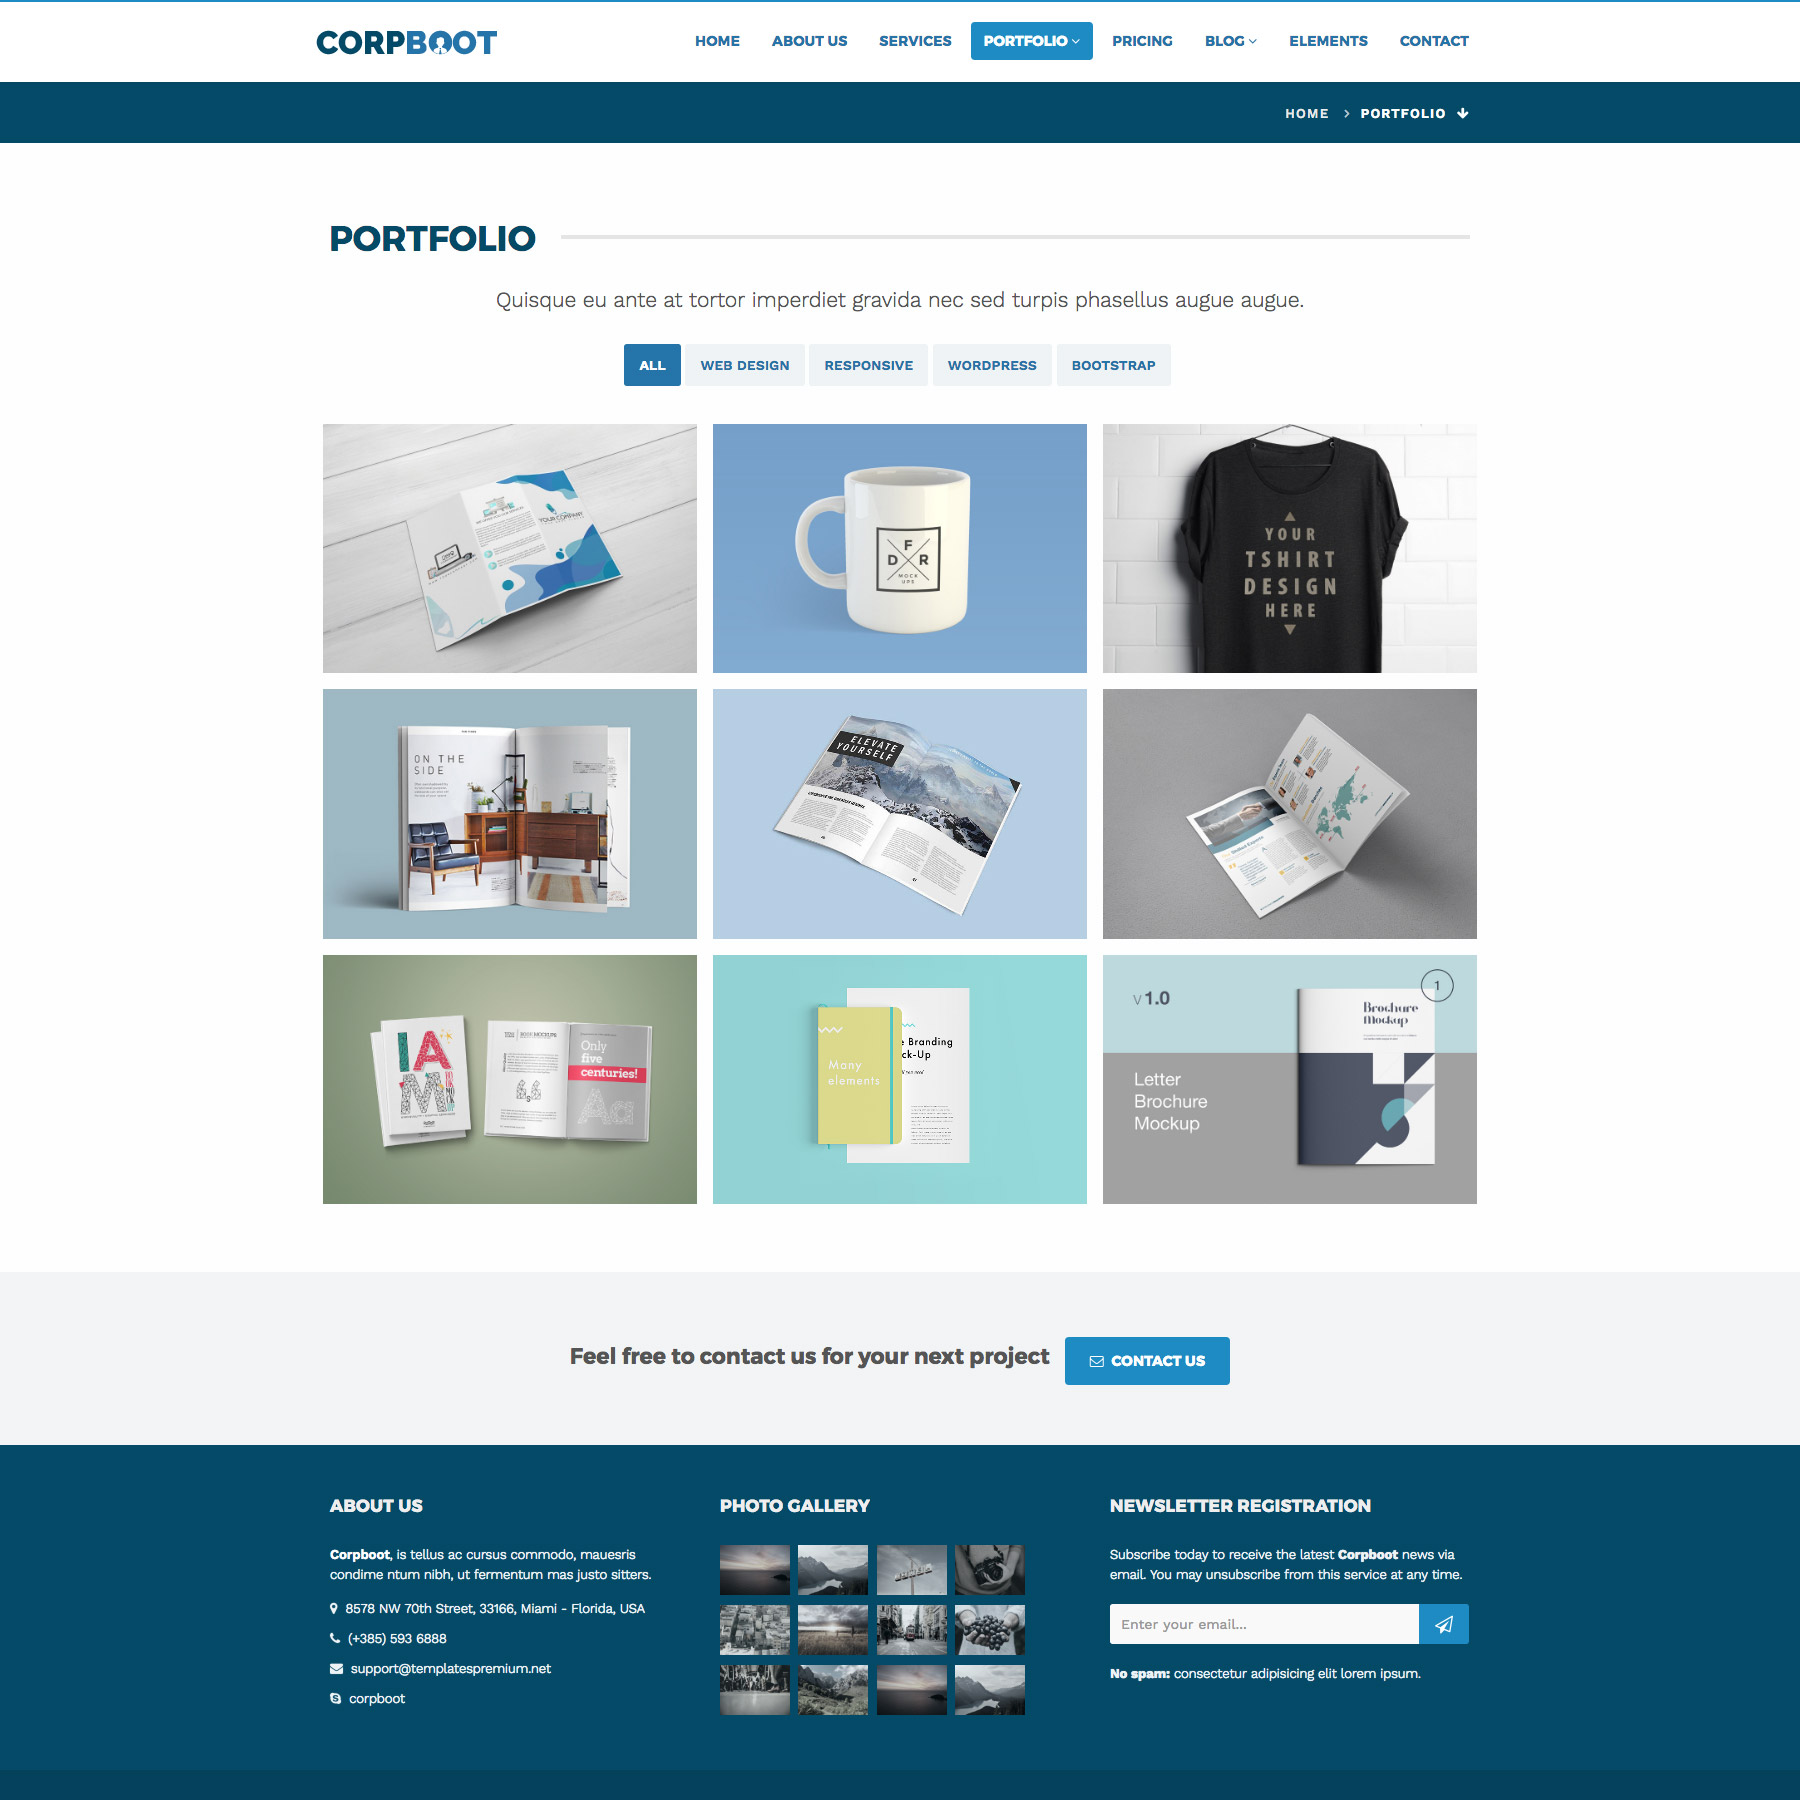 Corpboot - Corporate Website Template by rafamem | ThemeForest